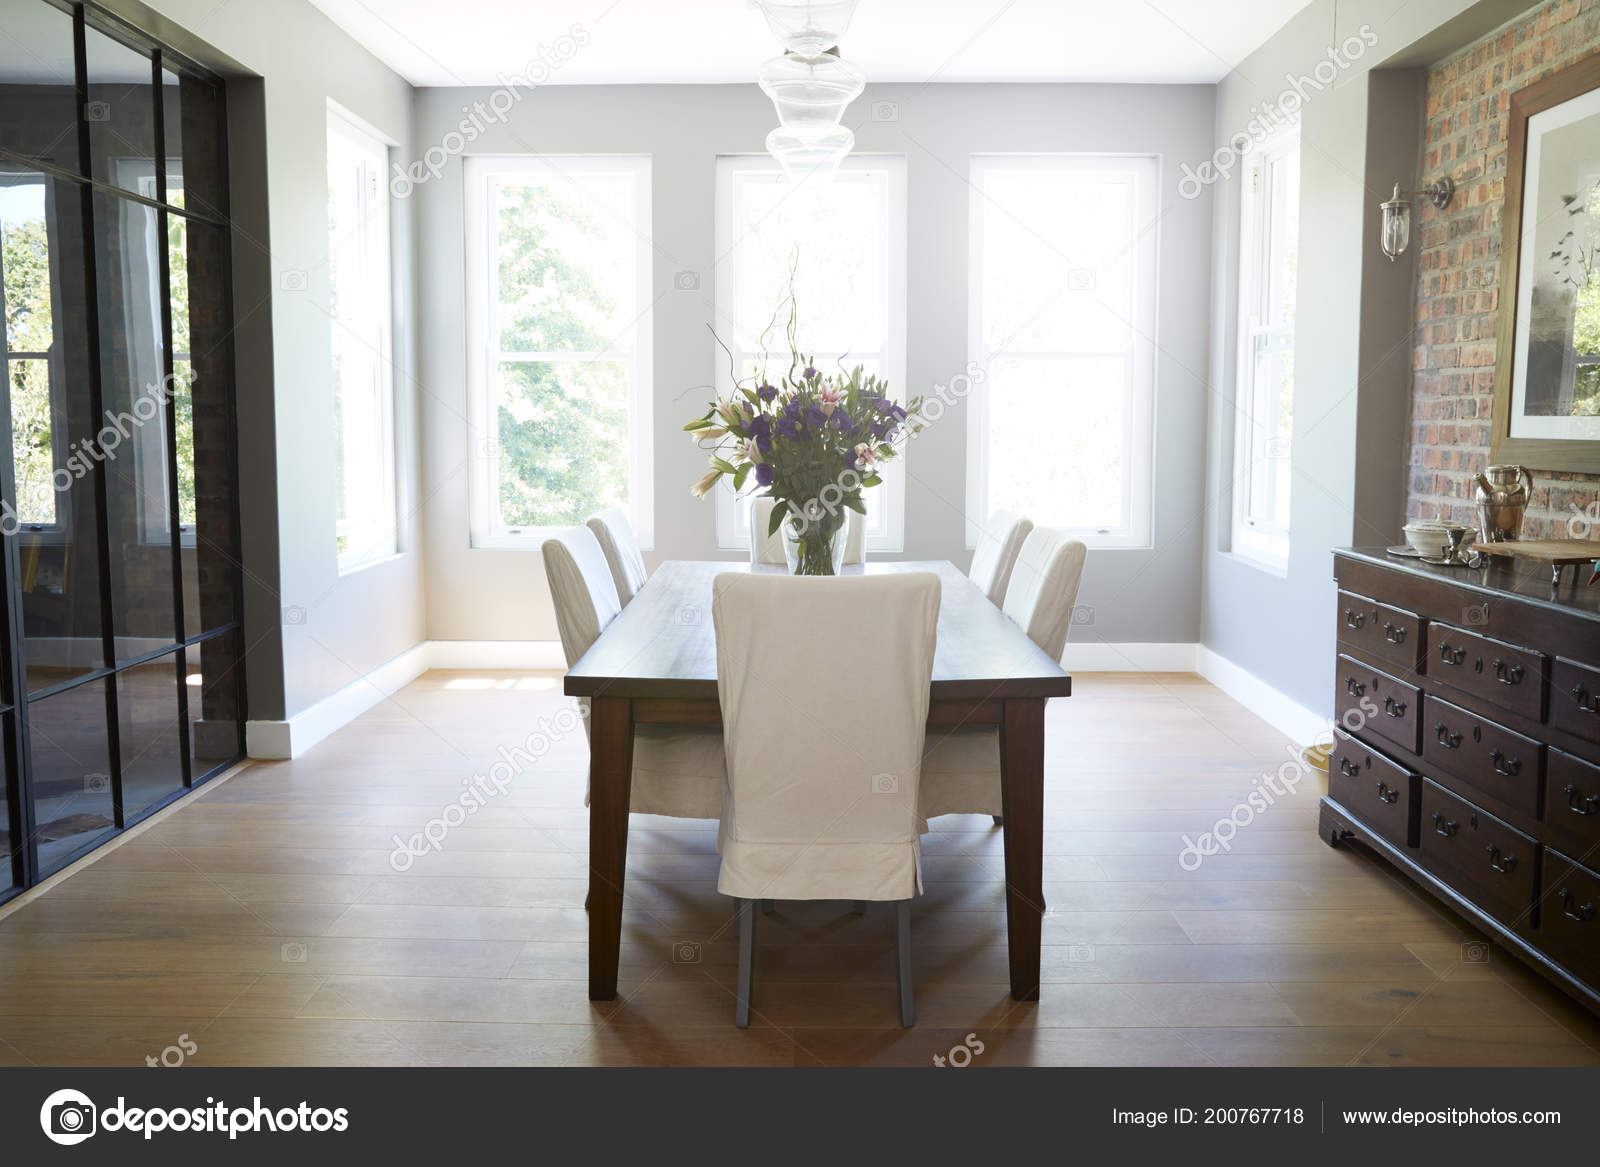 Moderno Mobiliario Comedor Interno — Fotos de Stock © monkeybusiness ...